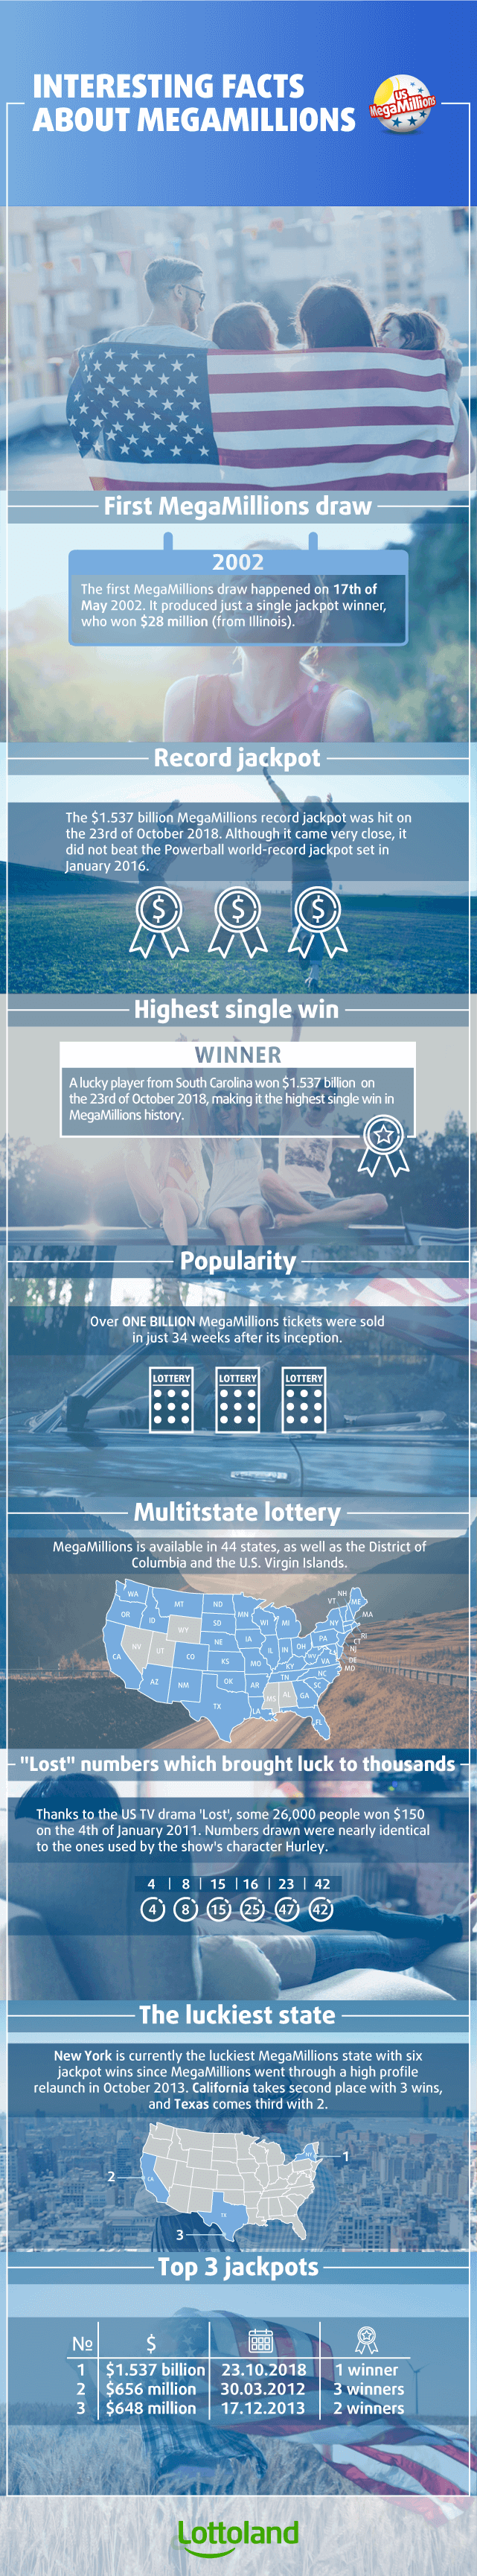 Infographic with interesting facts about USA MegaMillions